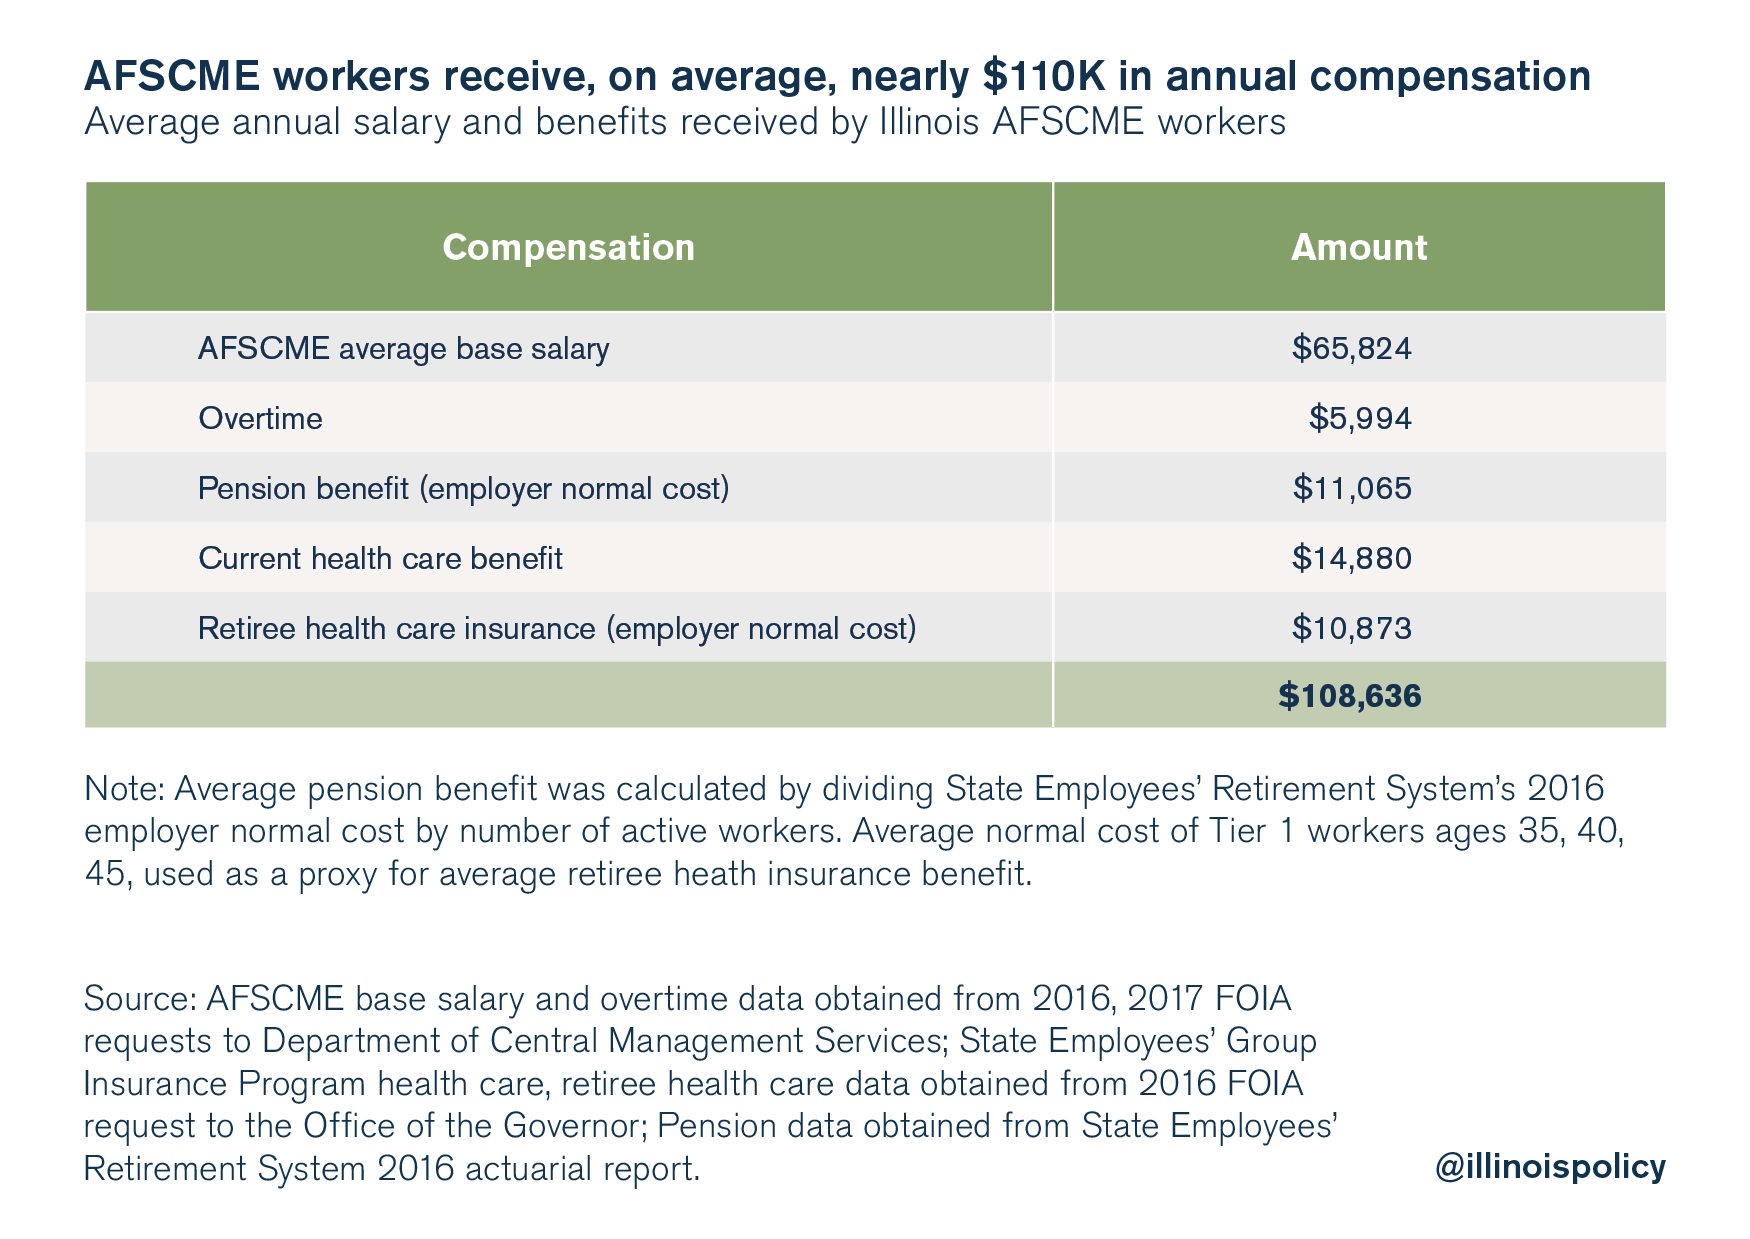 AFSCME workers receive, on average, nearly $110K in annual compensation